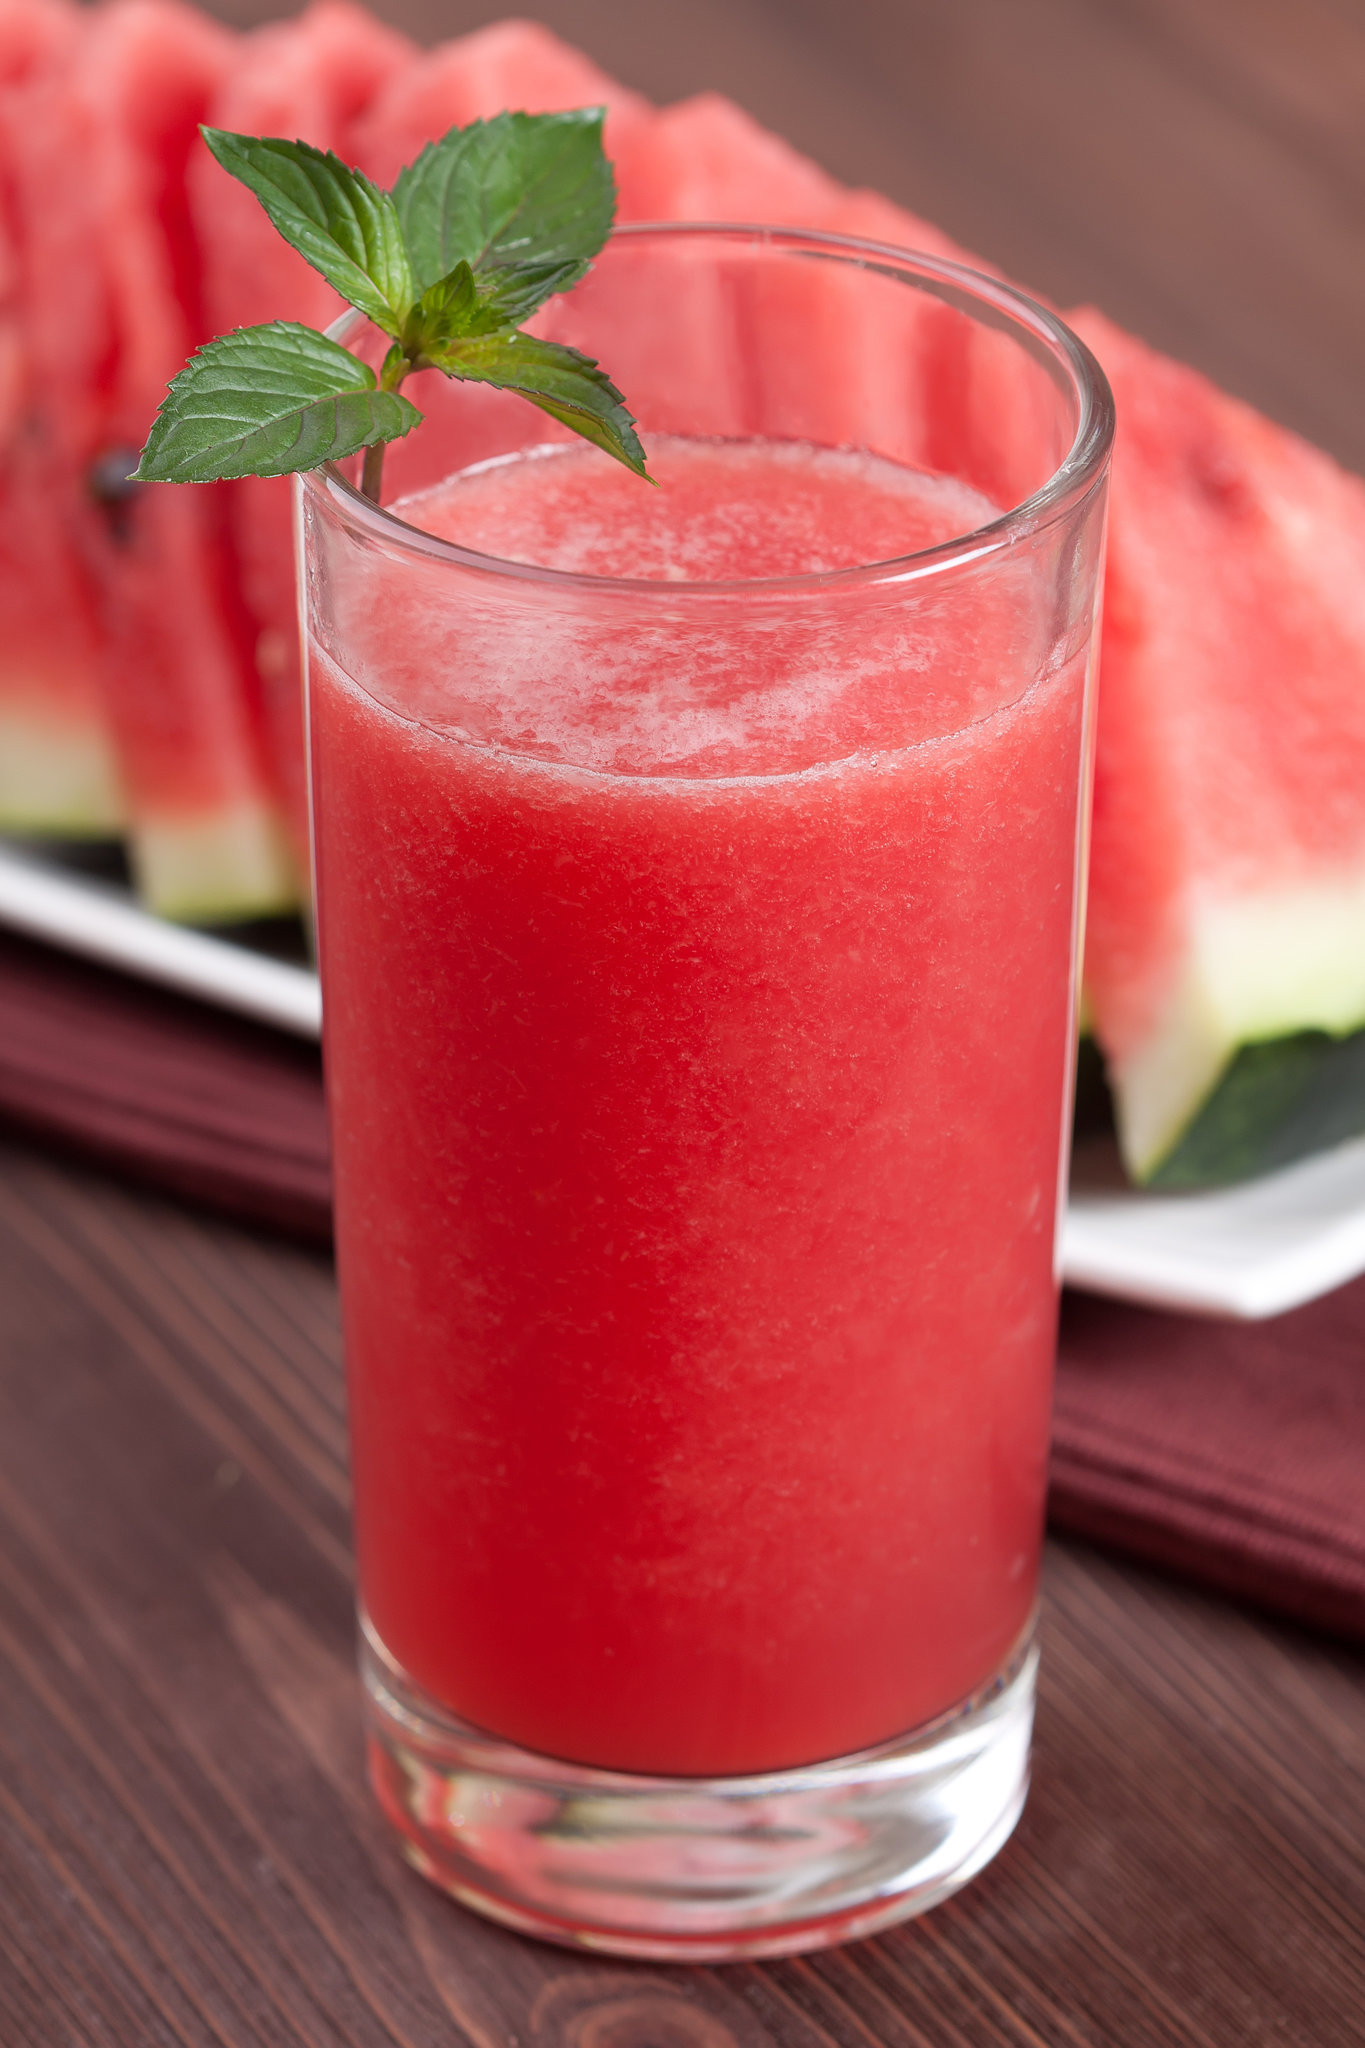 Watermelon Juice | What a Watermelon! 13 Recipes That Highlight the ...